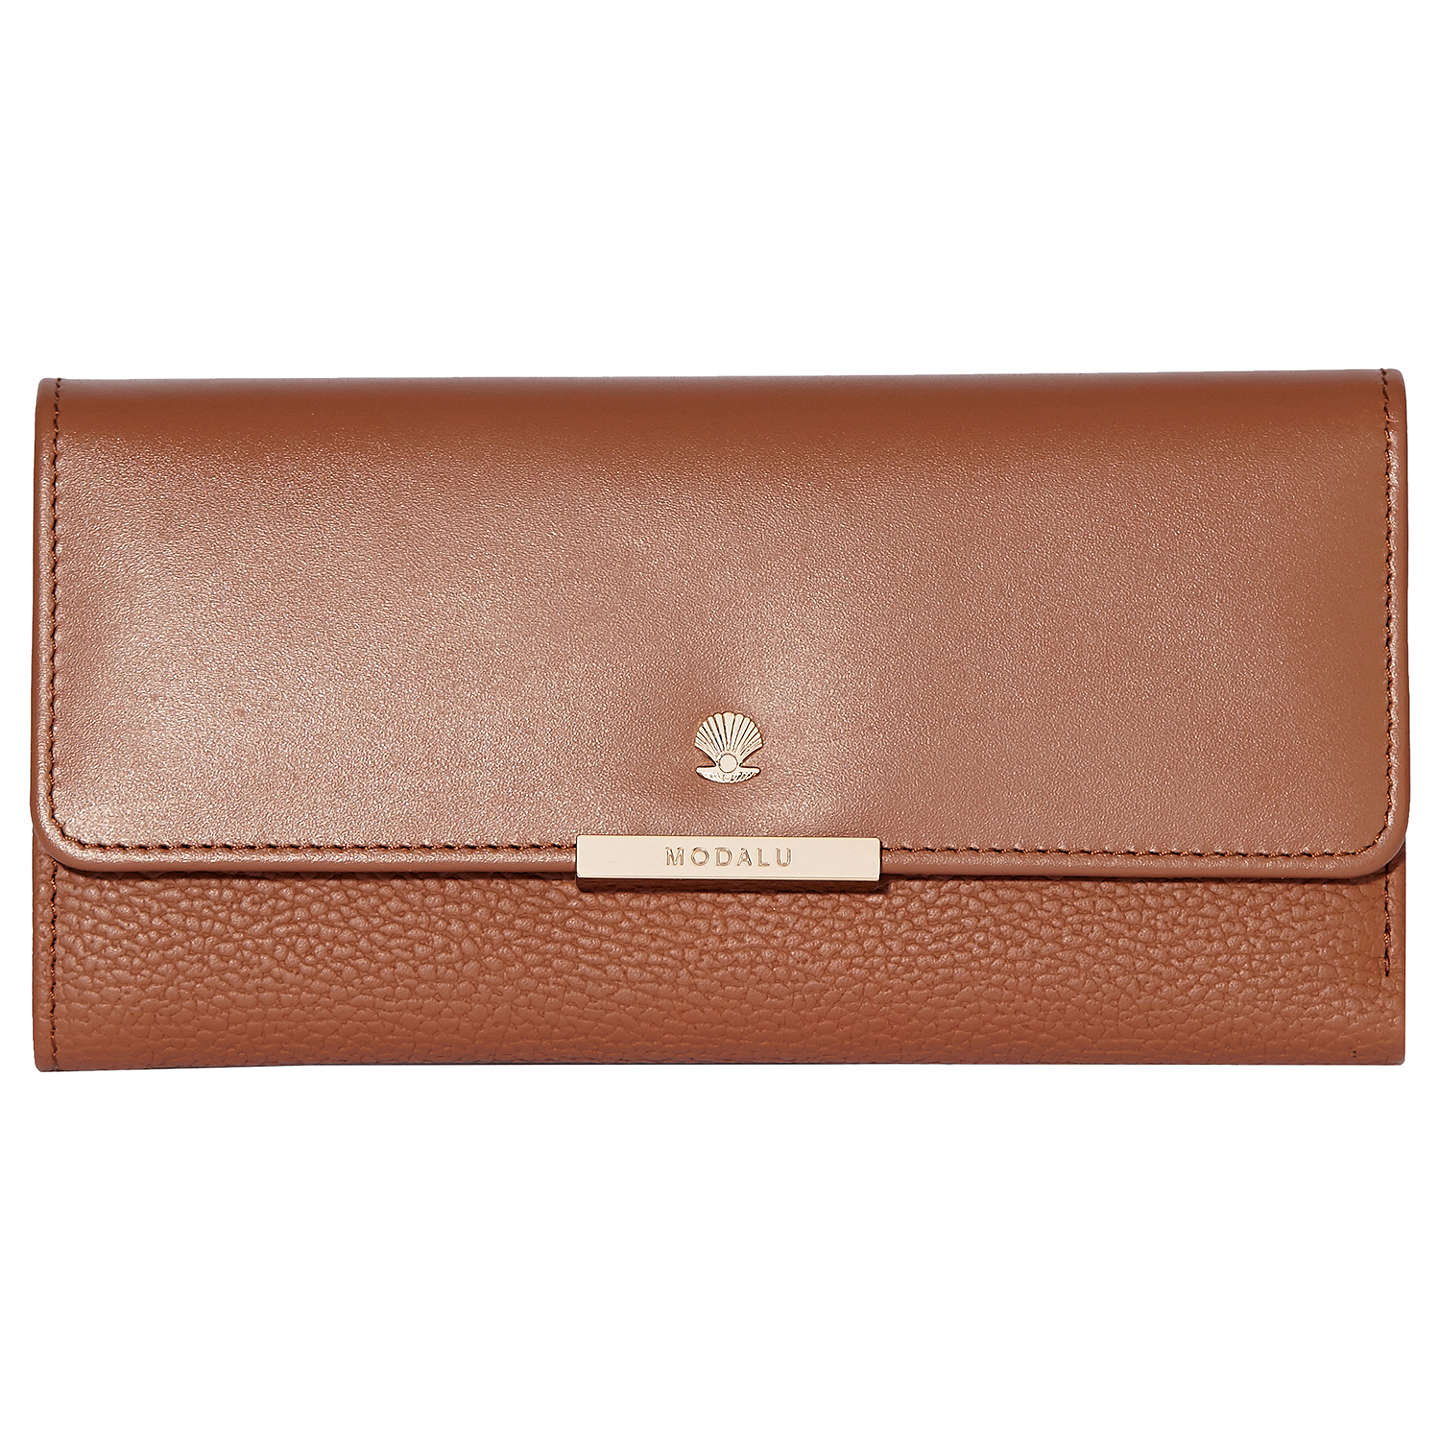 modula-margot-leather-dropdown-purse,-tan by modalu